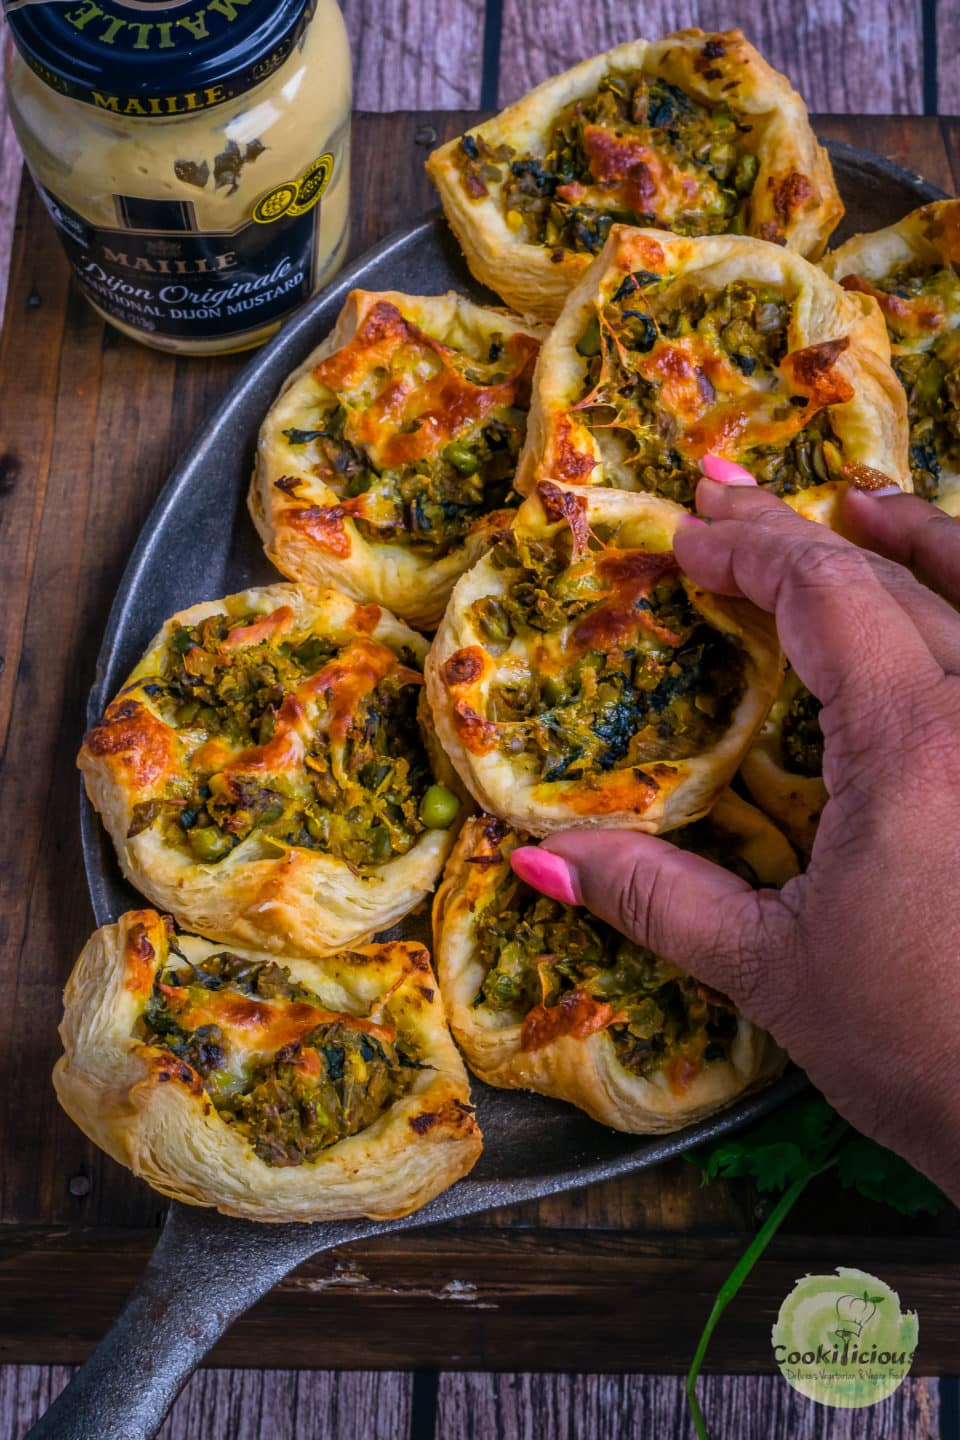 a hand picking up on Spicy Green Peas & Spinach Pastry Puff from the tray